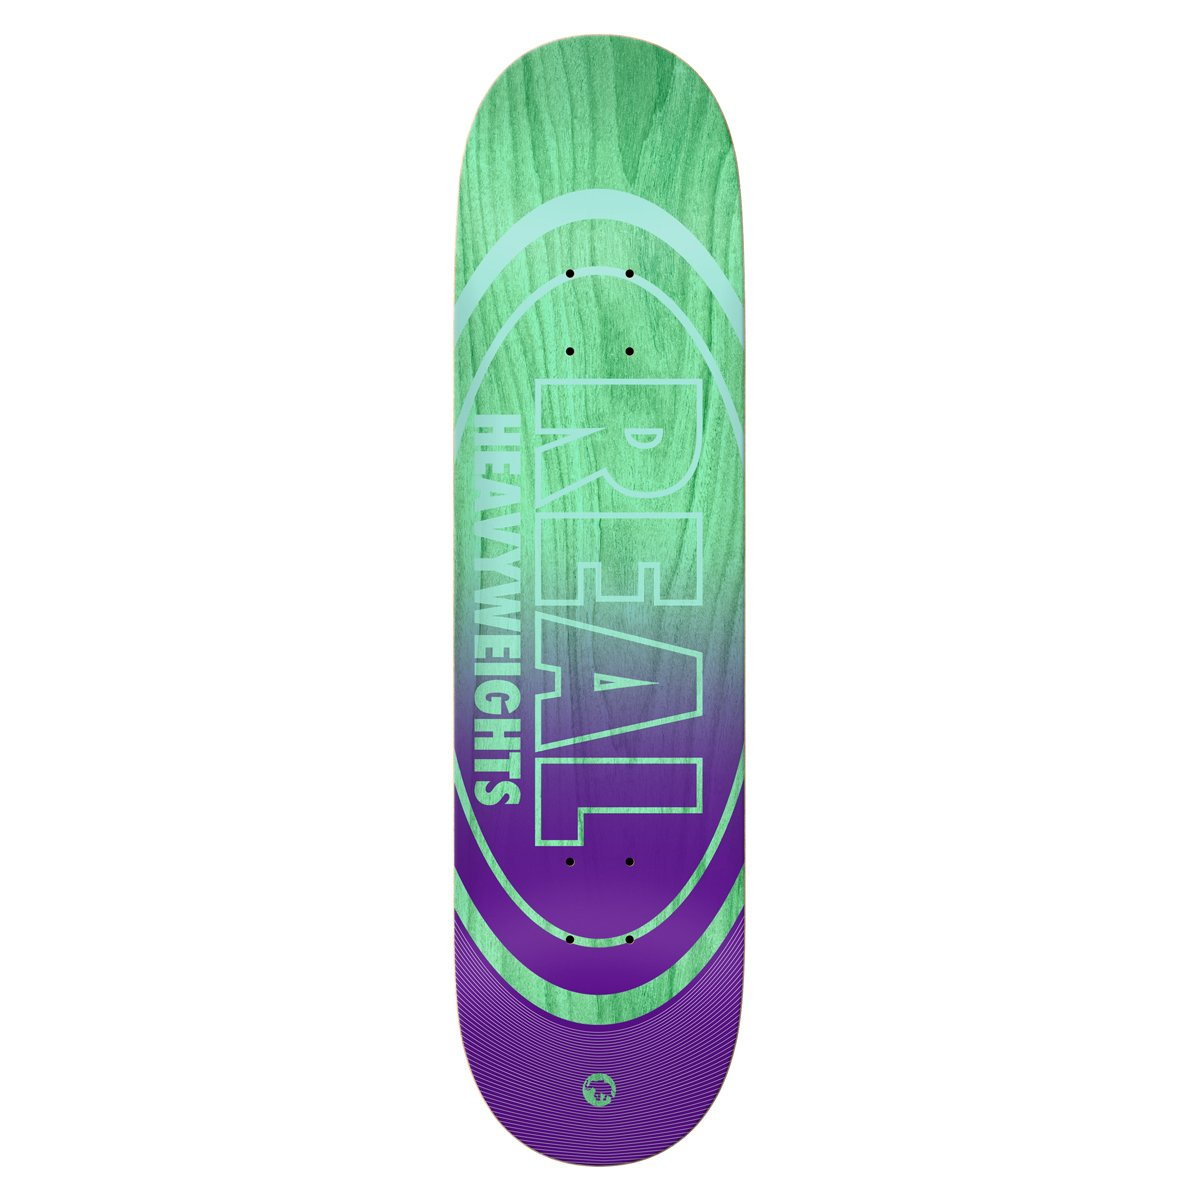 Real Heavyweights Deck Product Photo #1